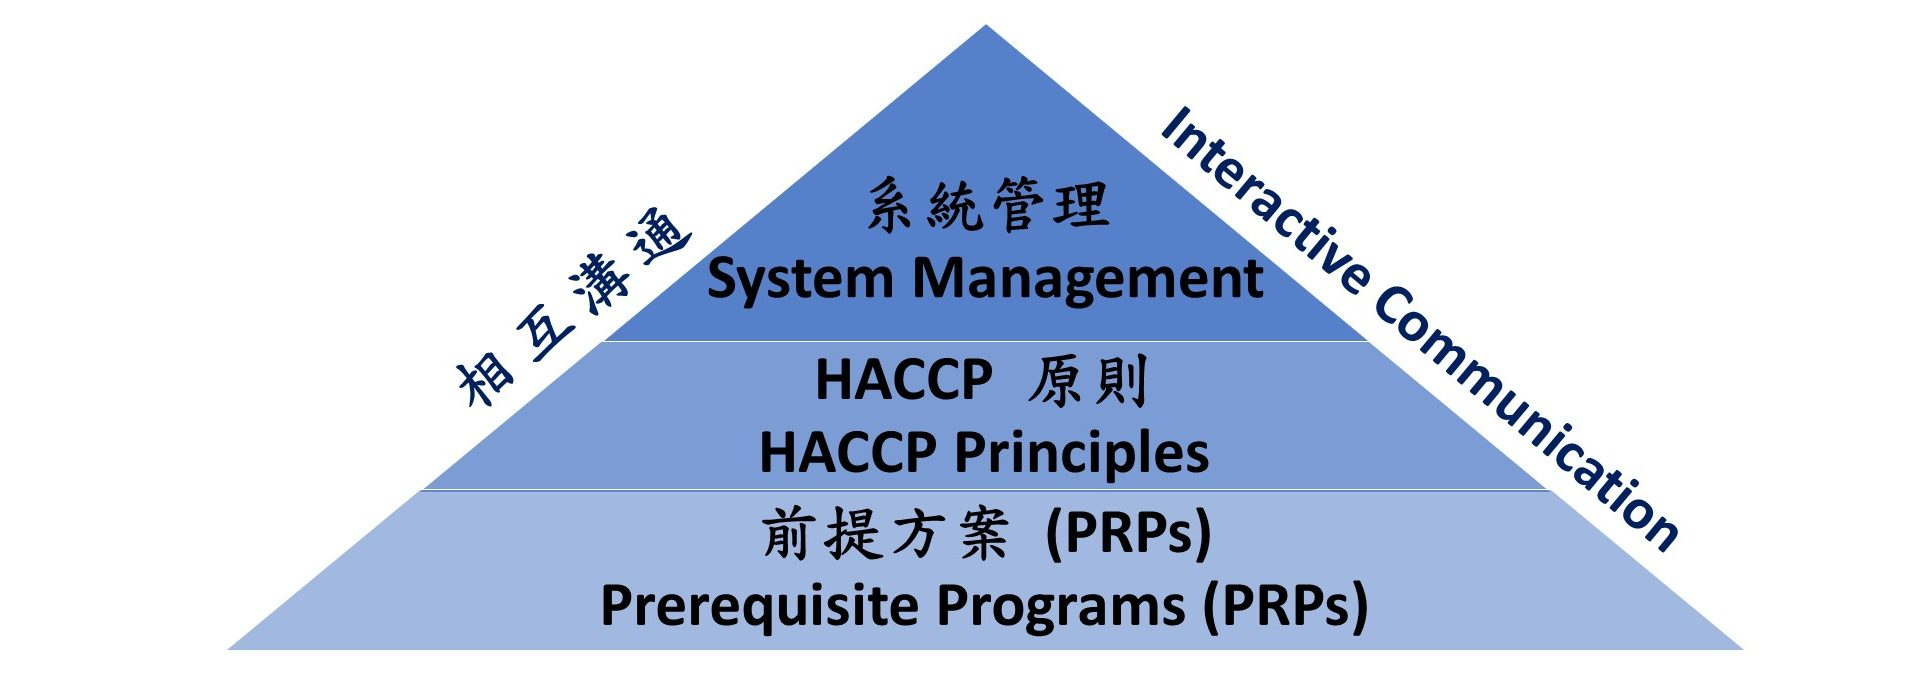 HACCP & ISO 22000 Certification Consulting